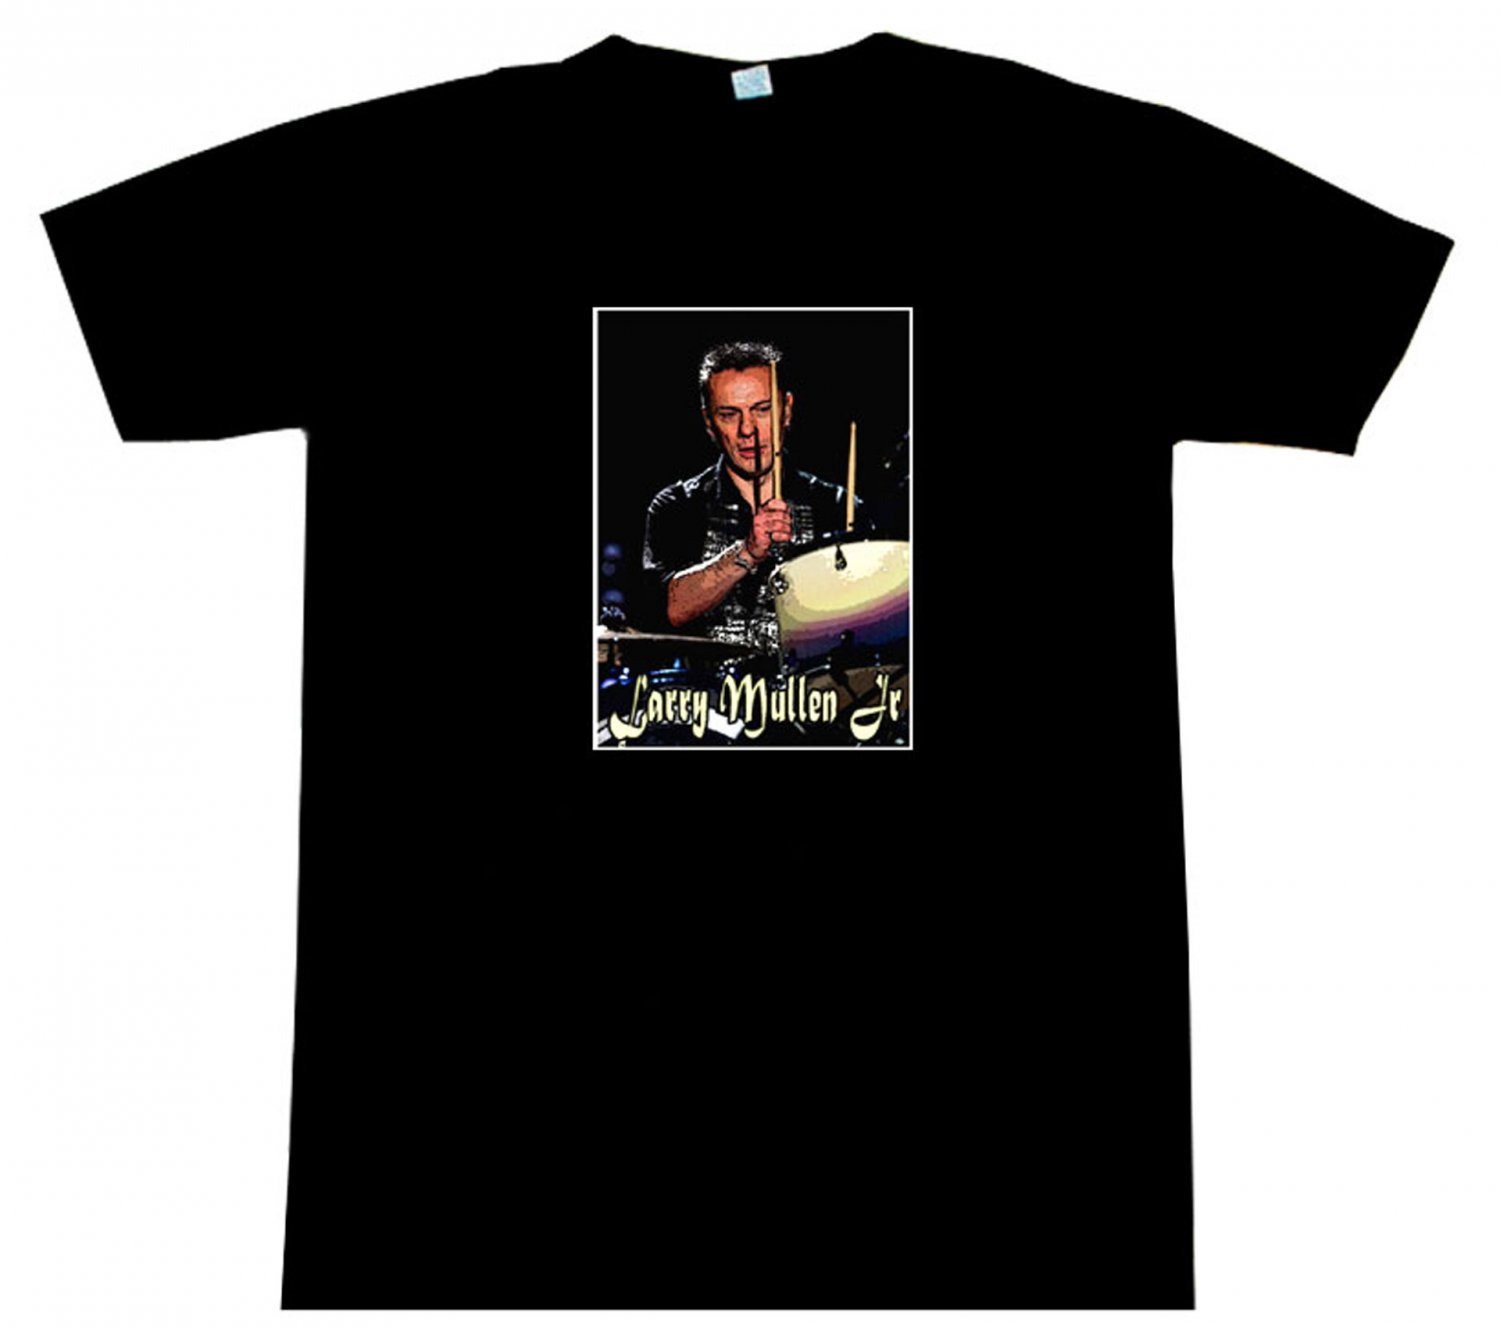 Larry mullen jr u2 t shirt beautiful for Simply for sports brand t shirts